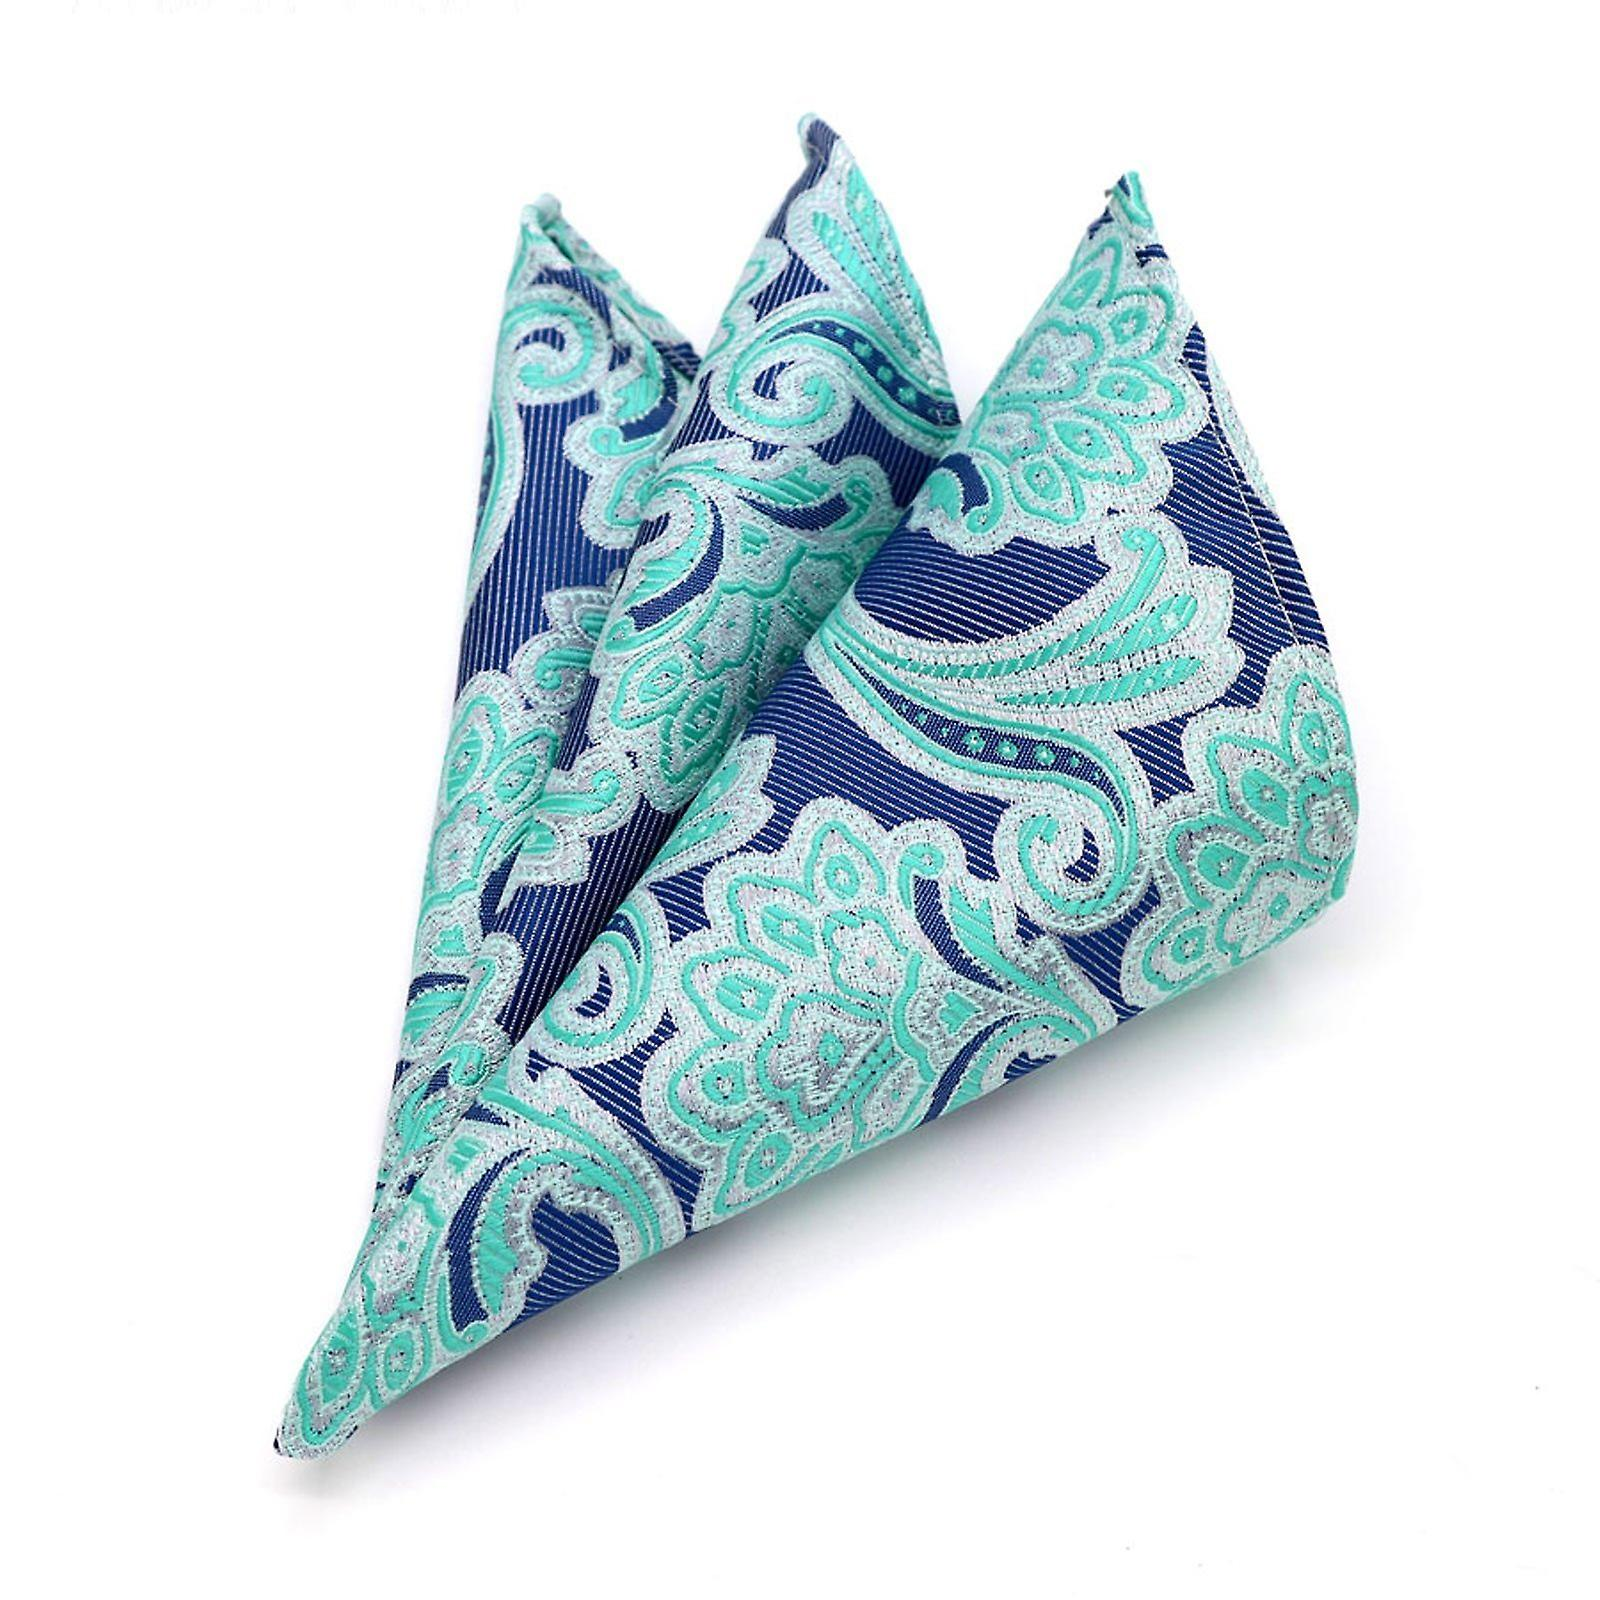 Mint green & purple paisley pattern men's pocket square